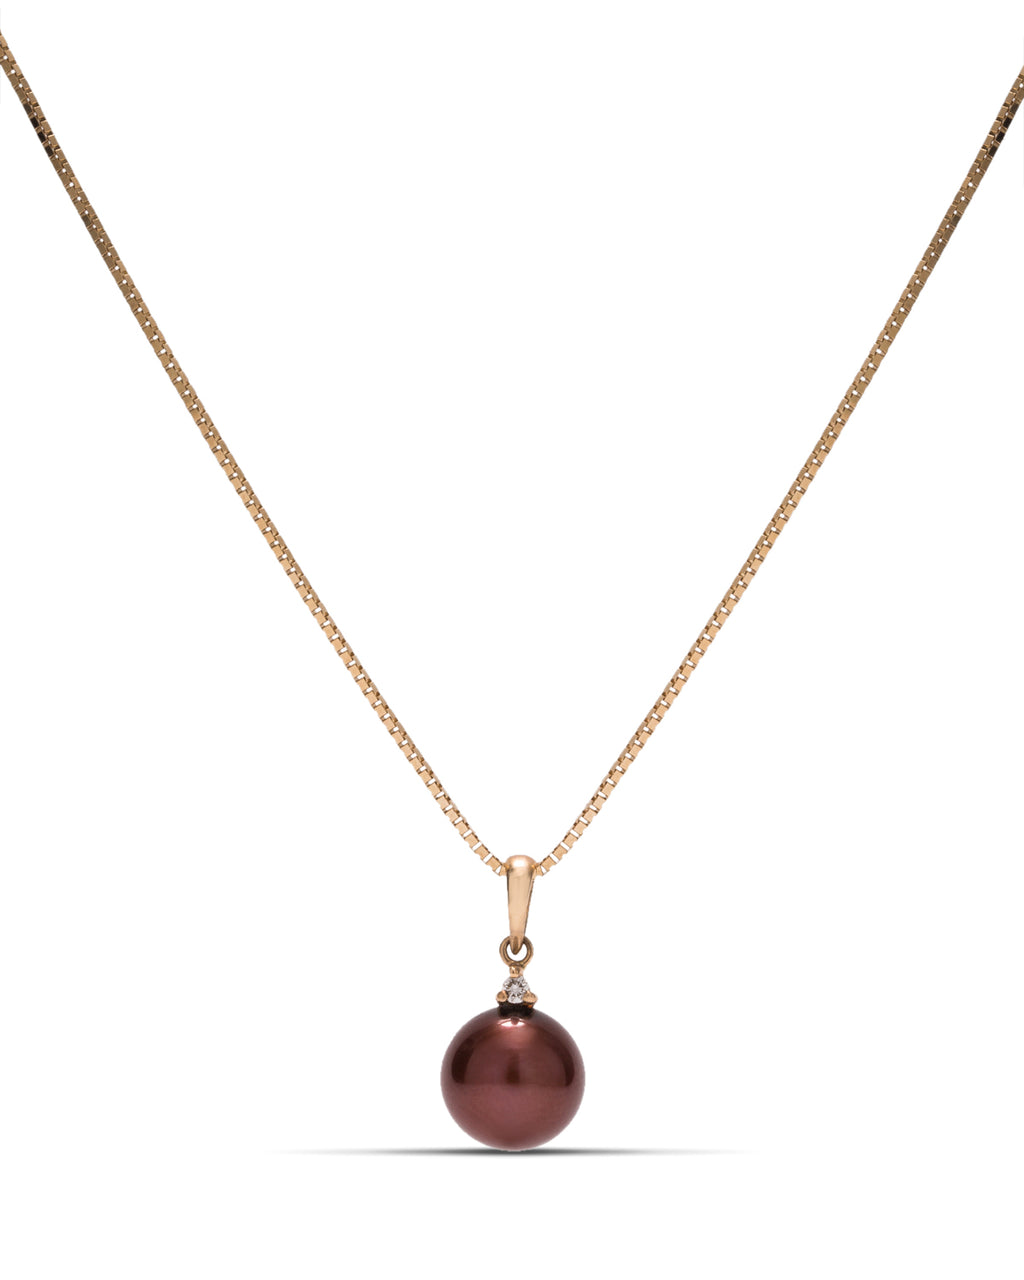 8.5mm Freshwater Pearl 14k Gold Pendant - Charles Koll Jewellers